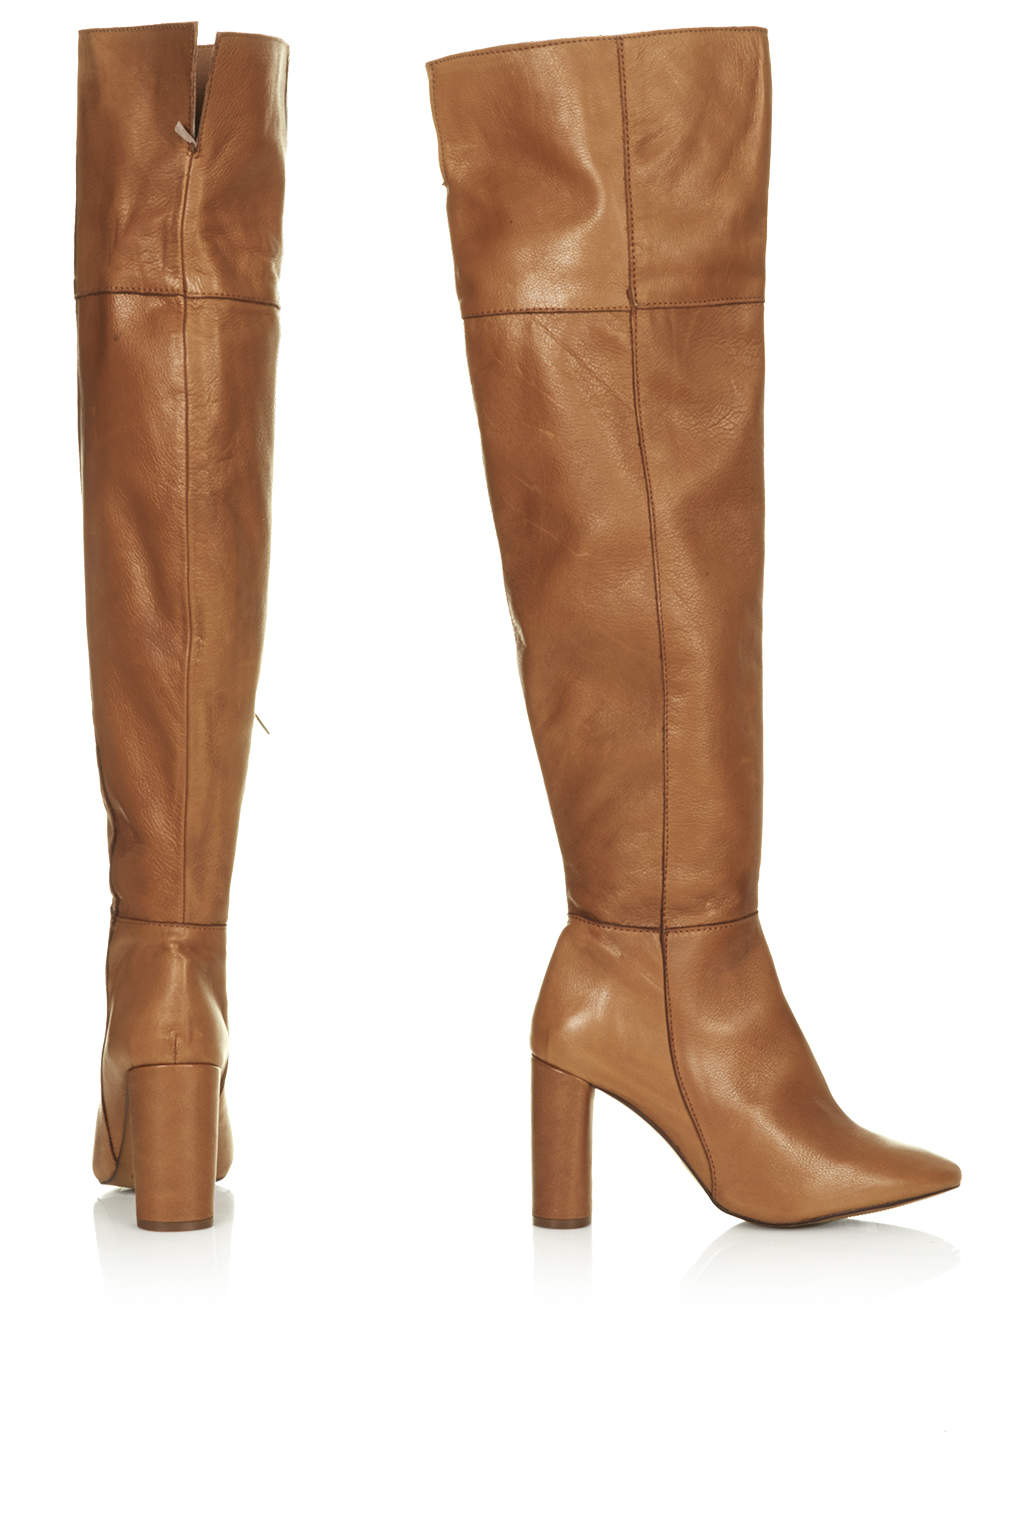 Lyst Topshop Collide High Leg Boots In Brown